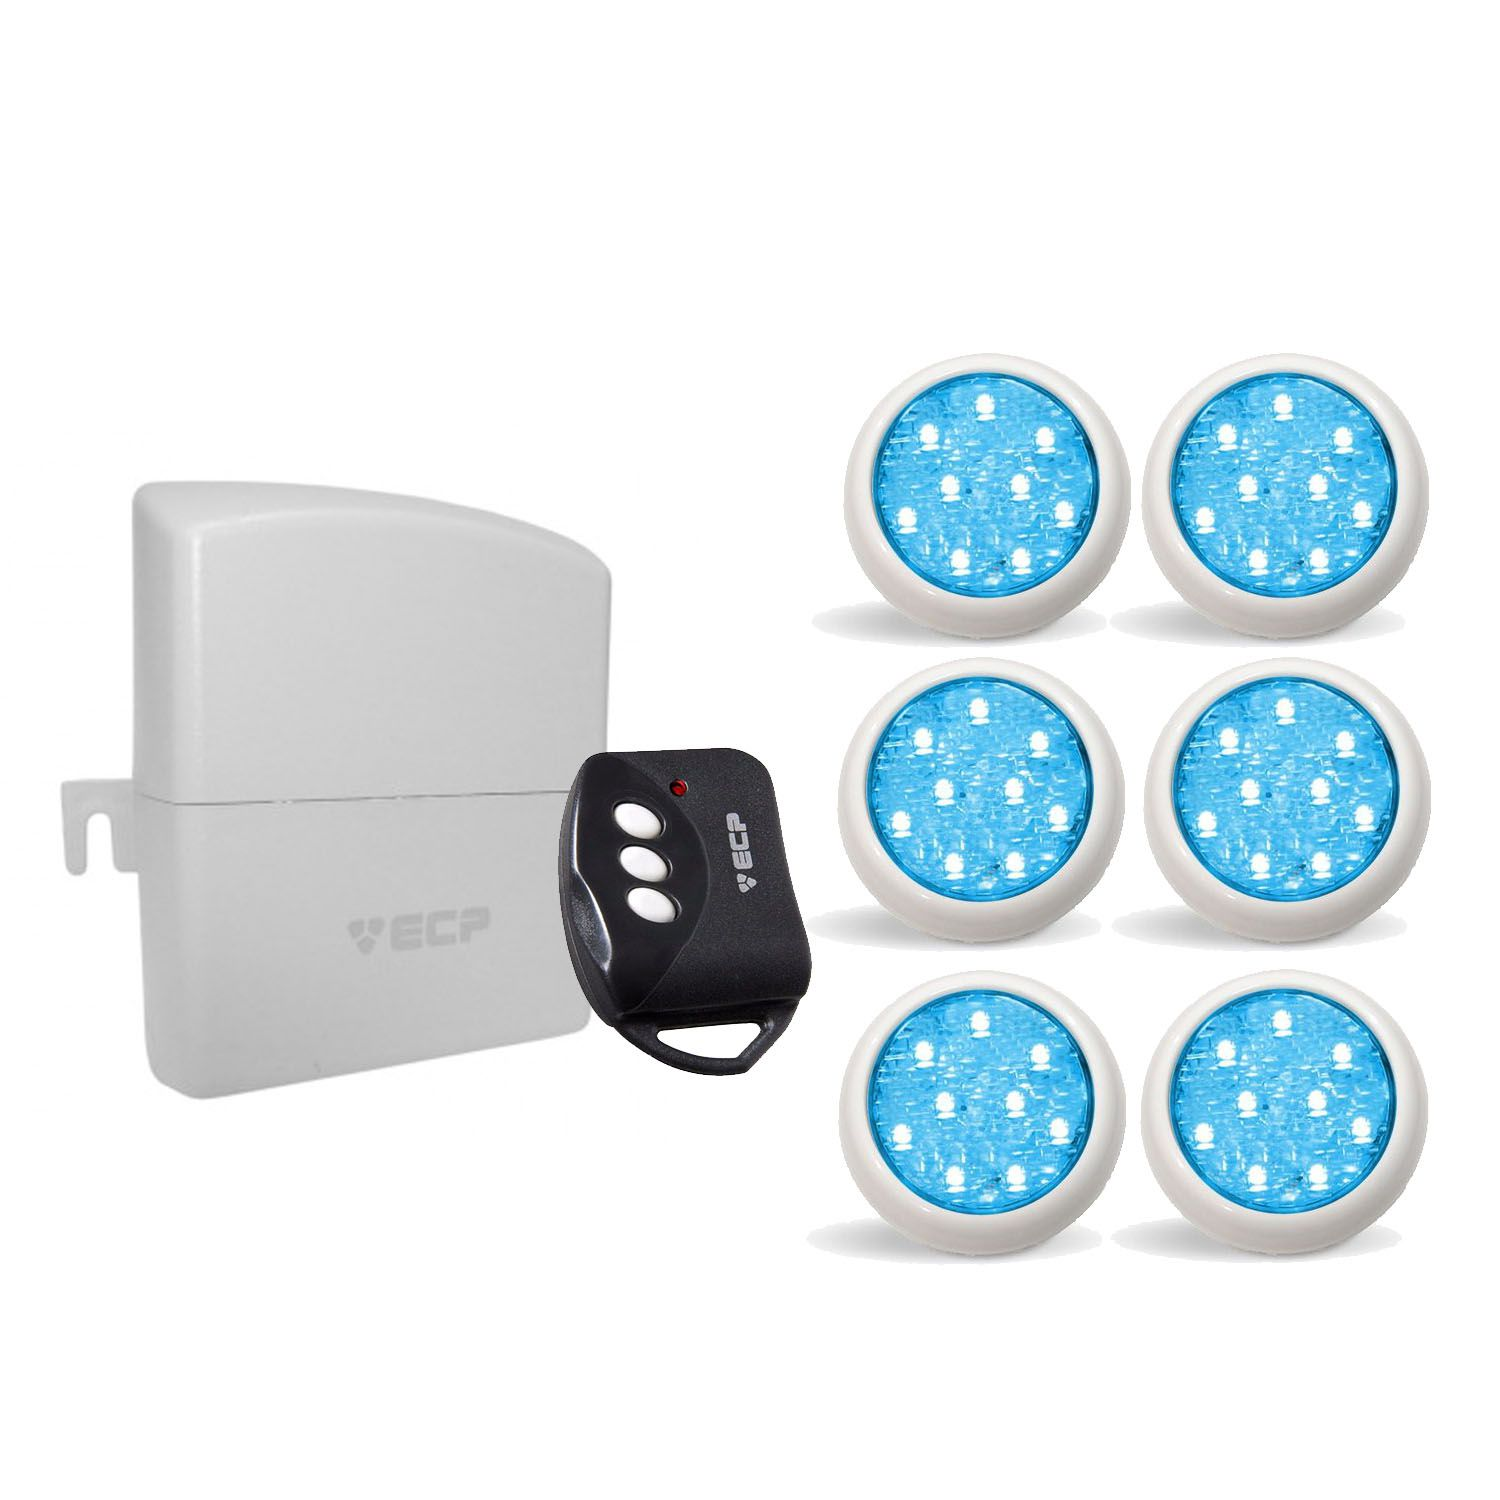 Kit 6 Led Piscina Monocromático 9w + Central + Controle